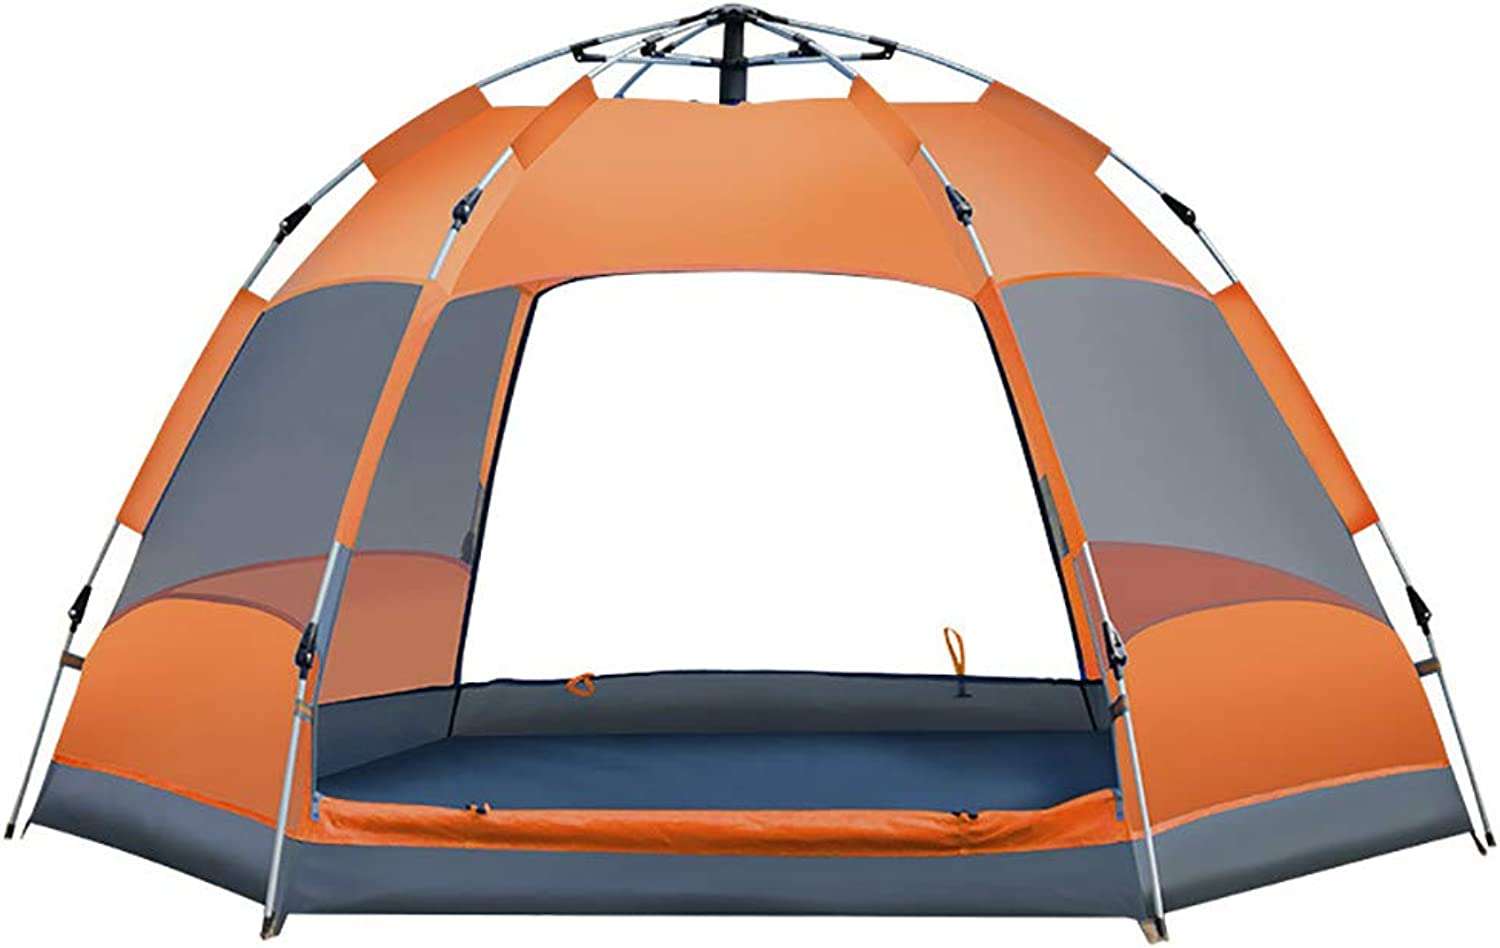 Camping Tent, 34 Person Outdoor Backpacking Light Weight Family Dome Tent Pop Up Instant Portable Compact Shelter Easy Set Up,for Family,Hiking